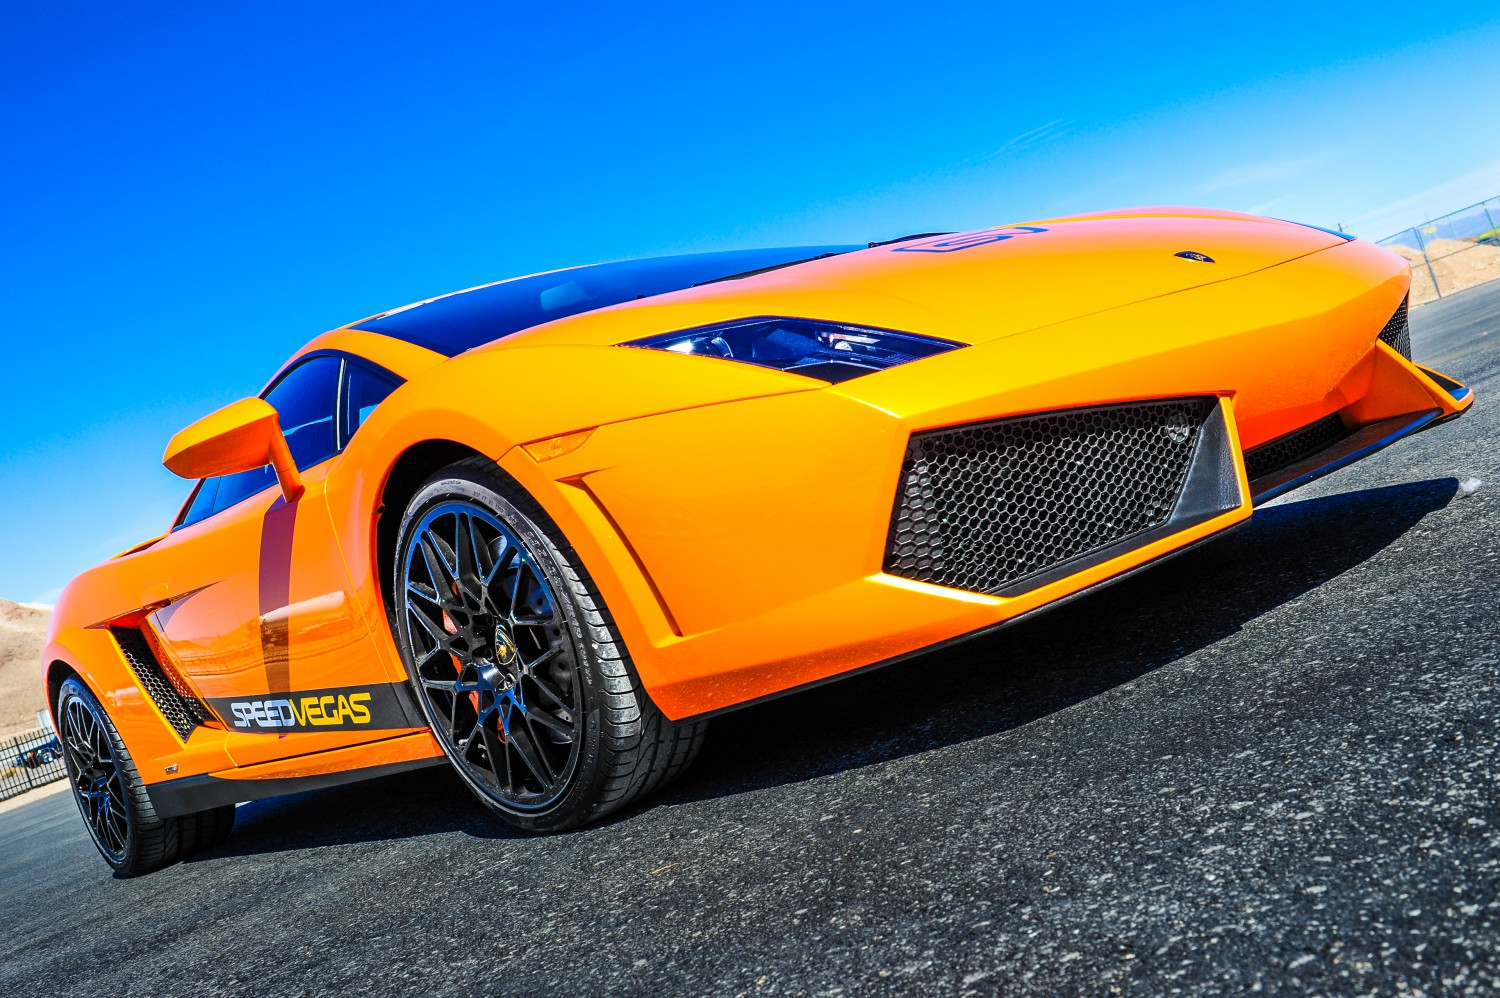 Drive a Lamborghini on track in Vegas  SPEEDVEGAS